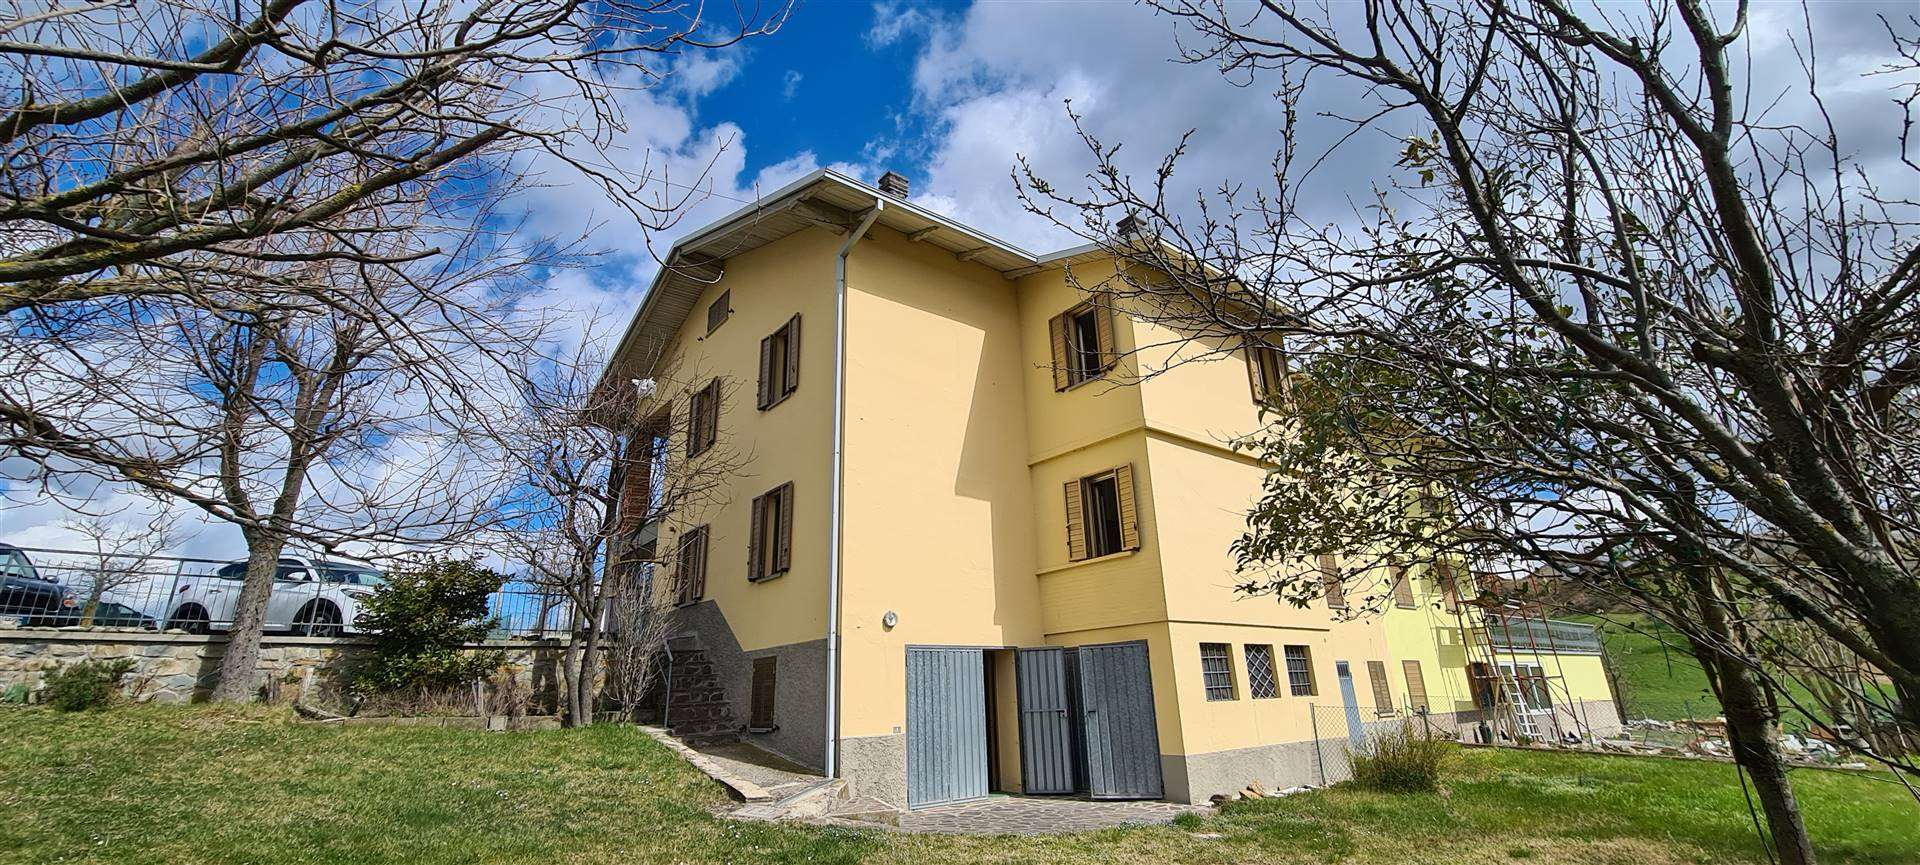 Duplex villa in MONTESE